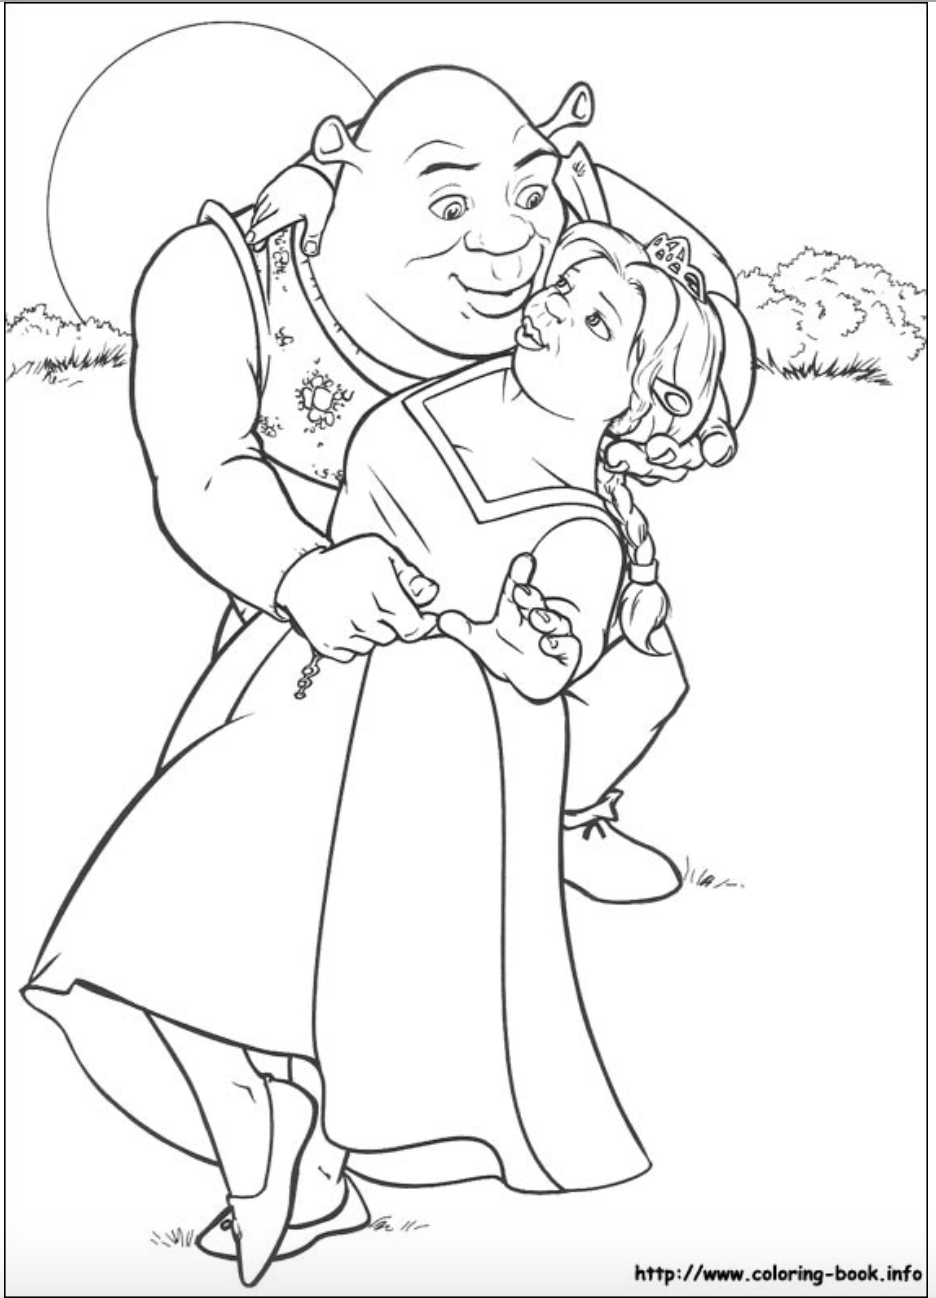 Coloring book info princess - Shrek And Princess Fiona Coloring Page